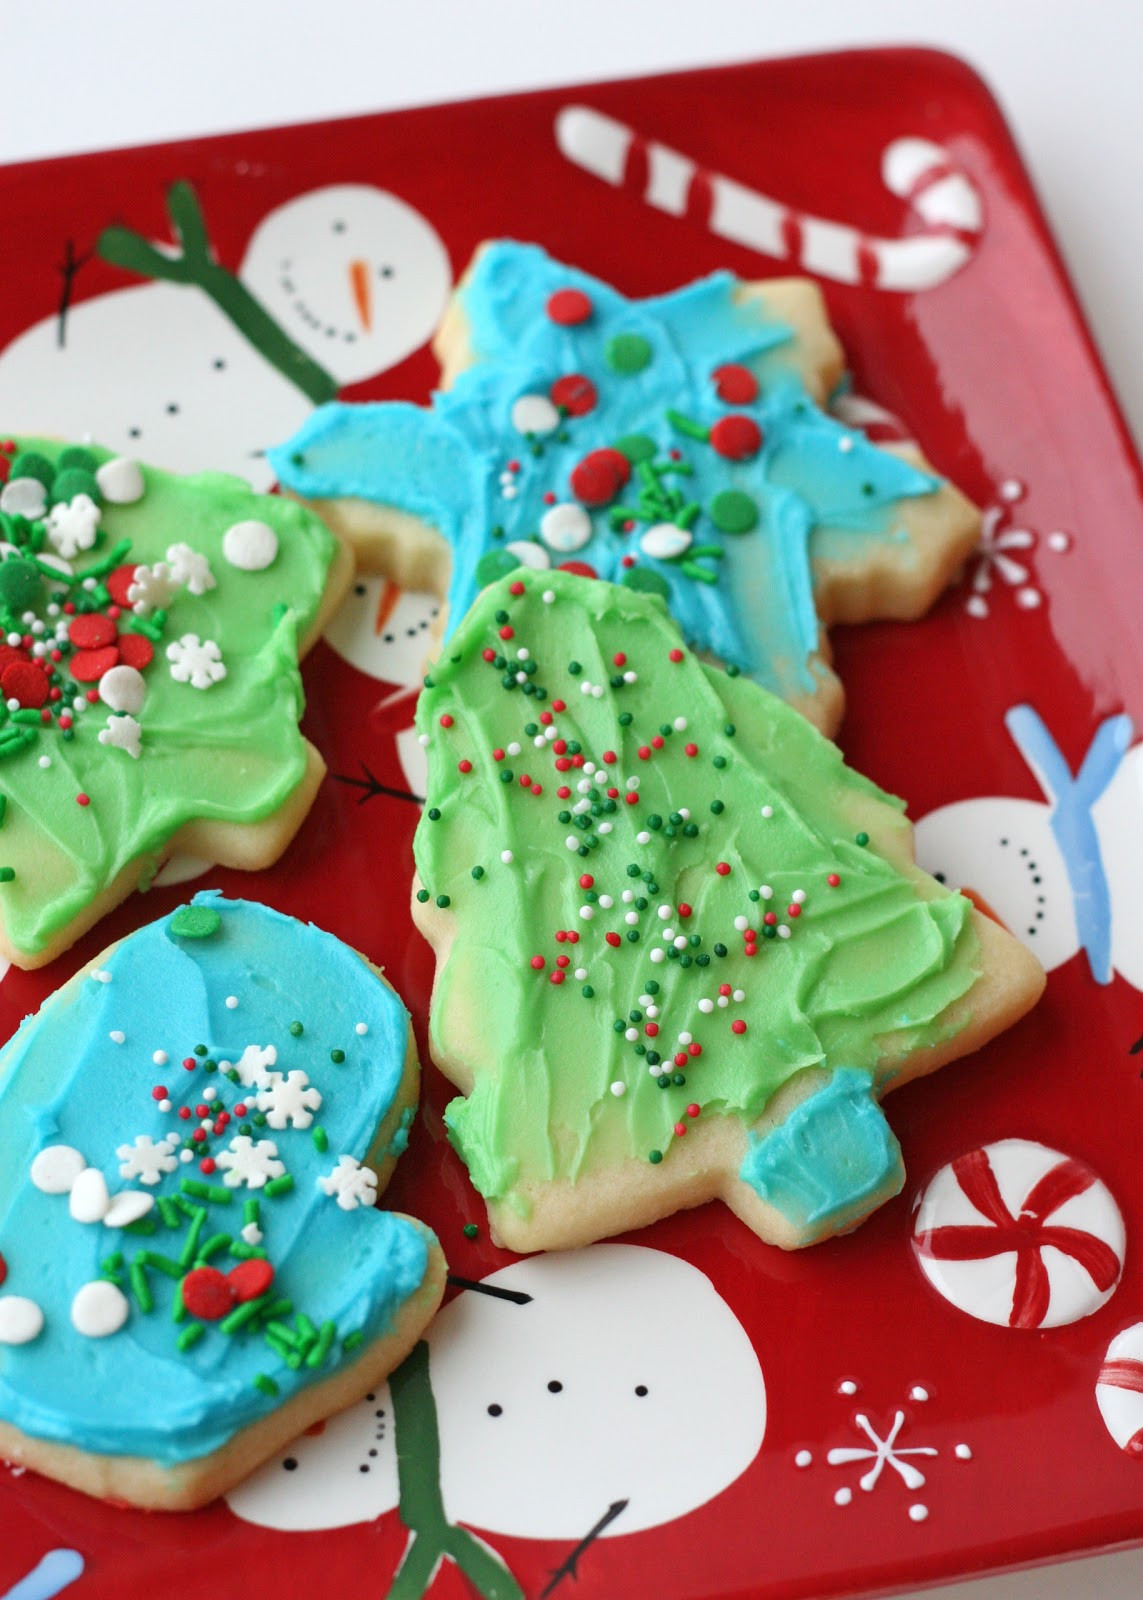 Easy Decorative Christmas Cookies  Cookie Decorating Kits for Kids and Easy Butter Frosting